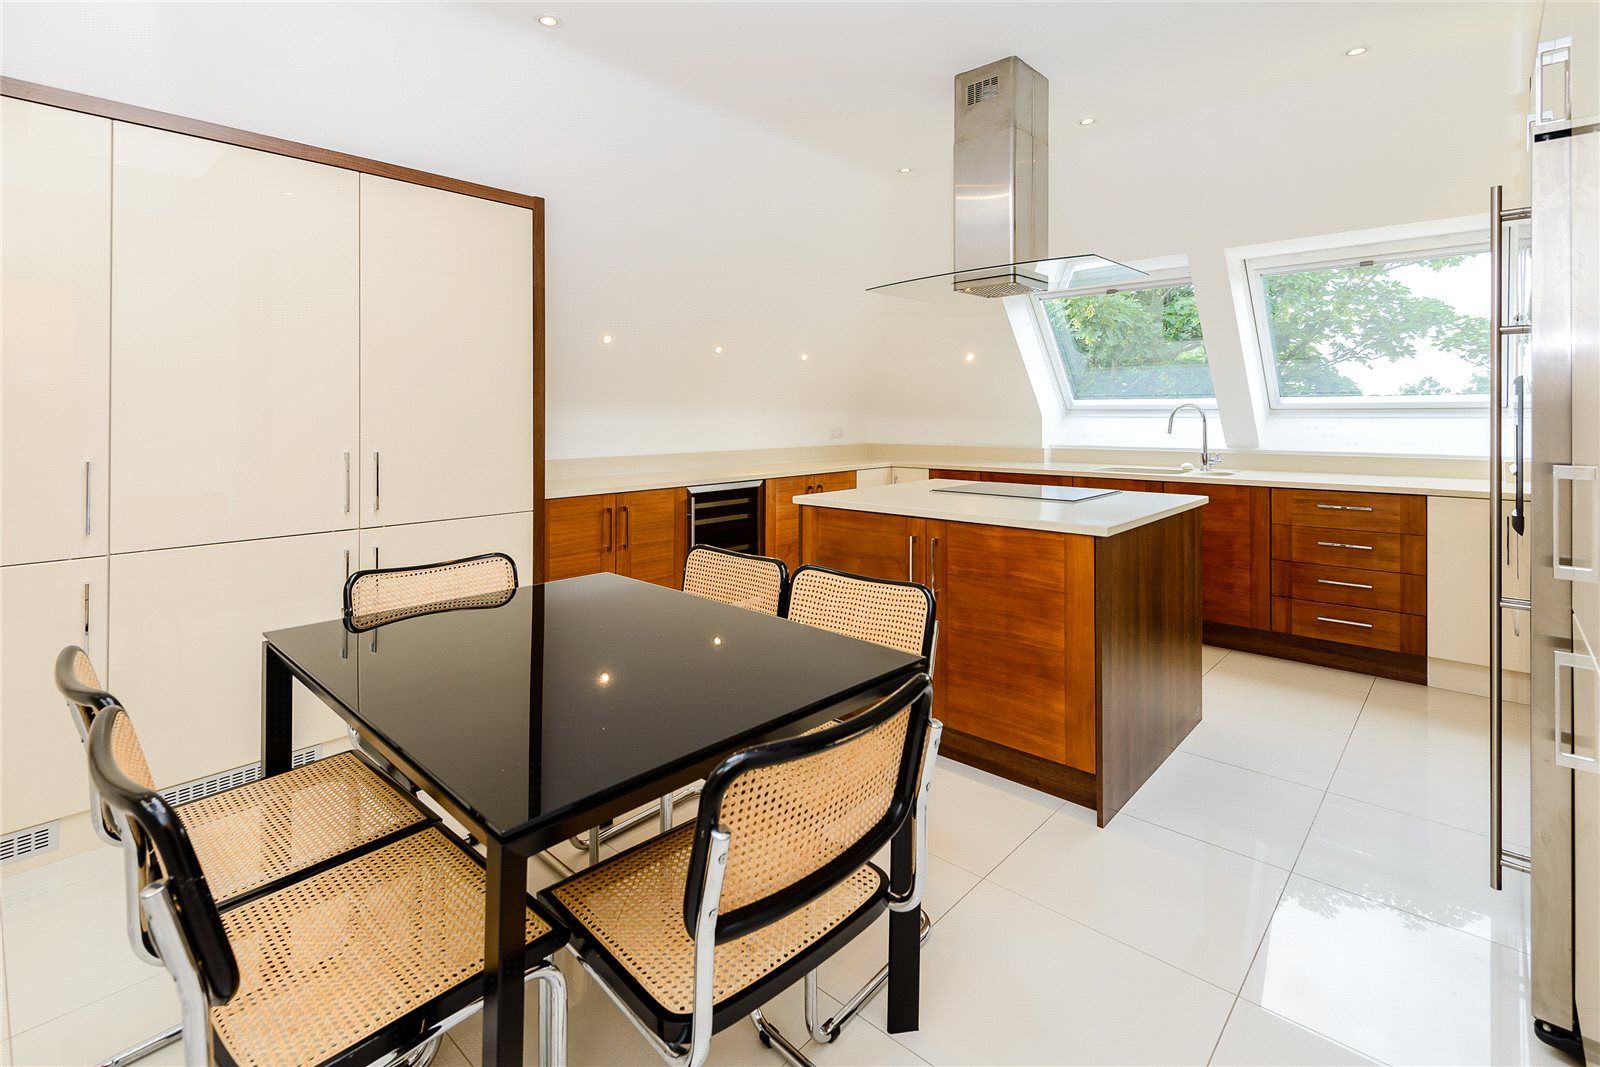 Additional photo for property listing at Claremont Court, 76 Packhorse Road, Gerrards Cross, Buckinghamshire, SL9 Gerrards Cross, Ingiltere